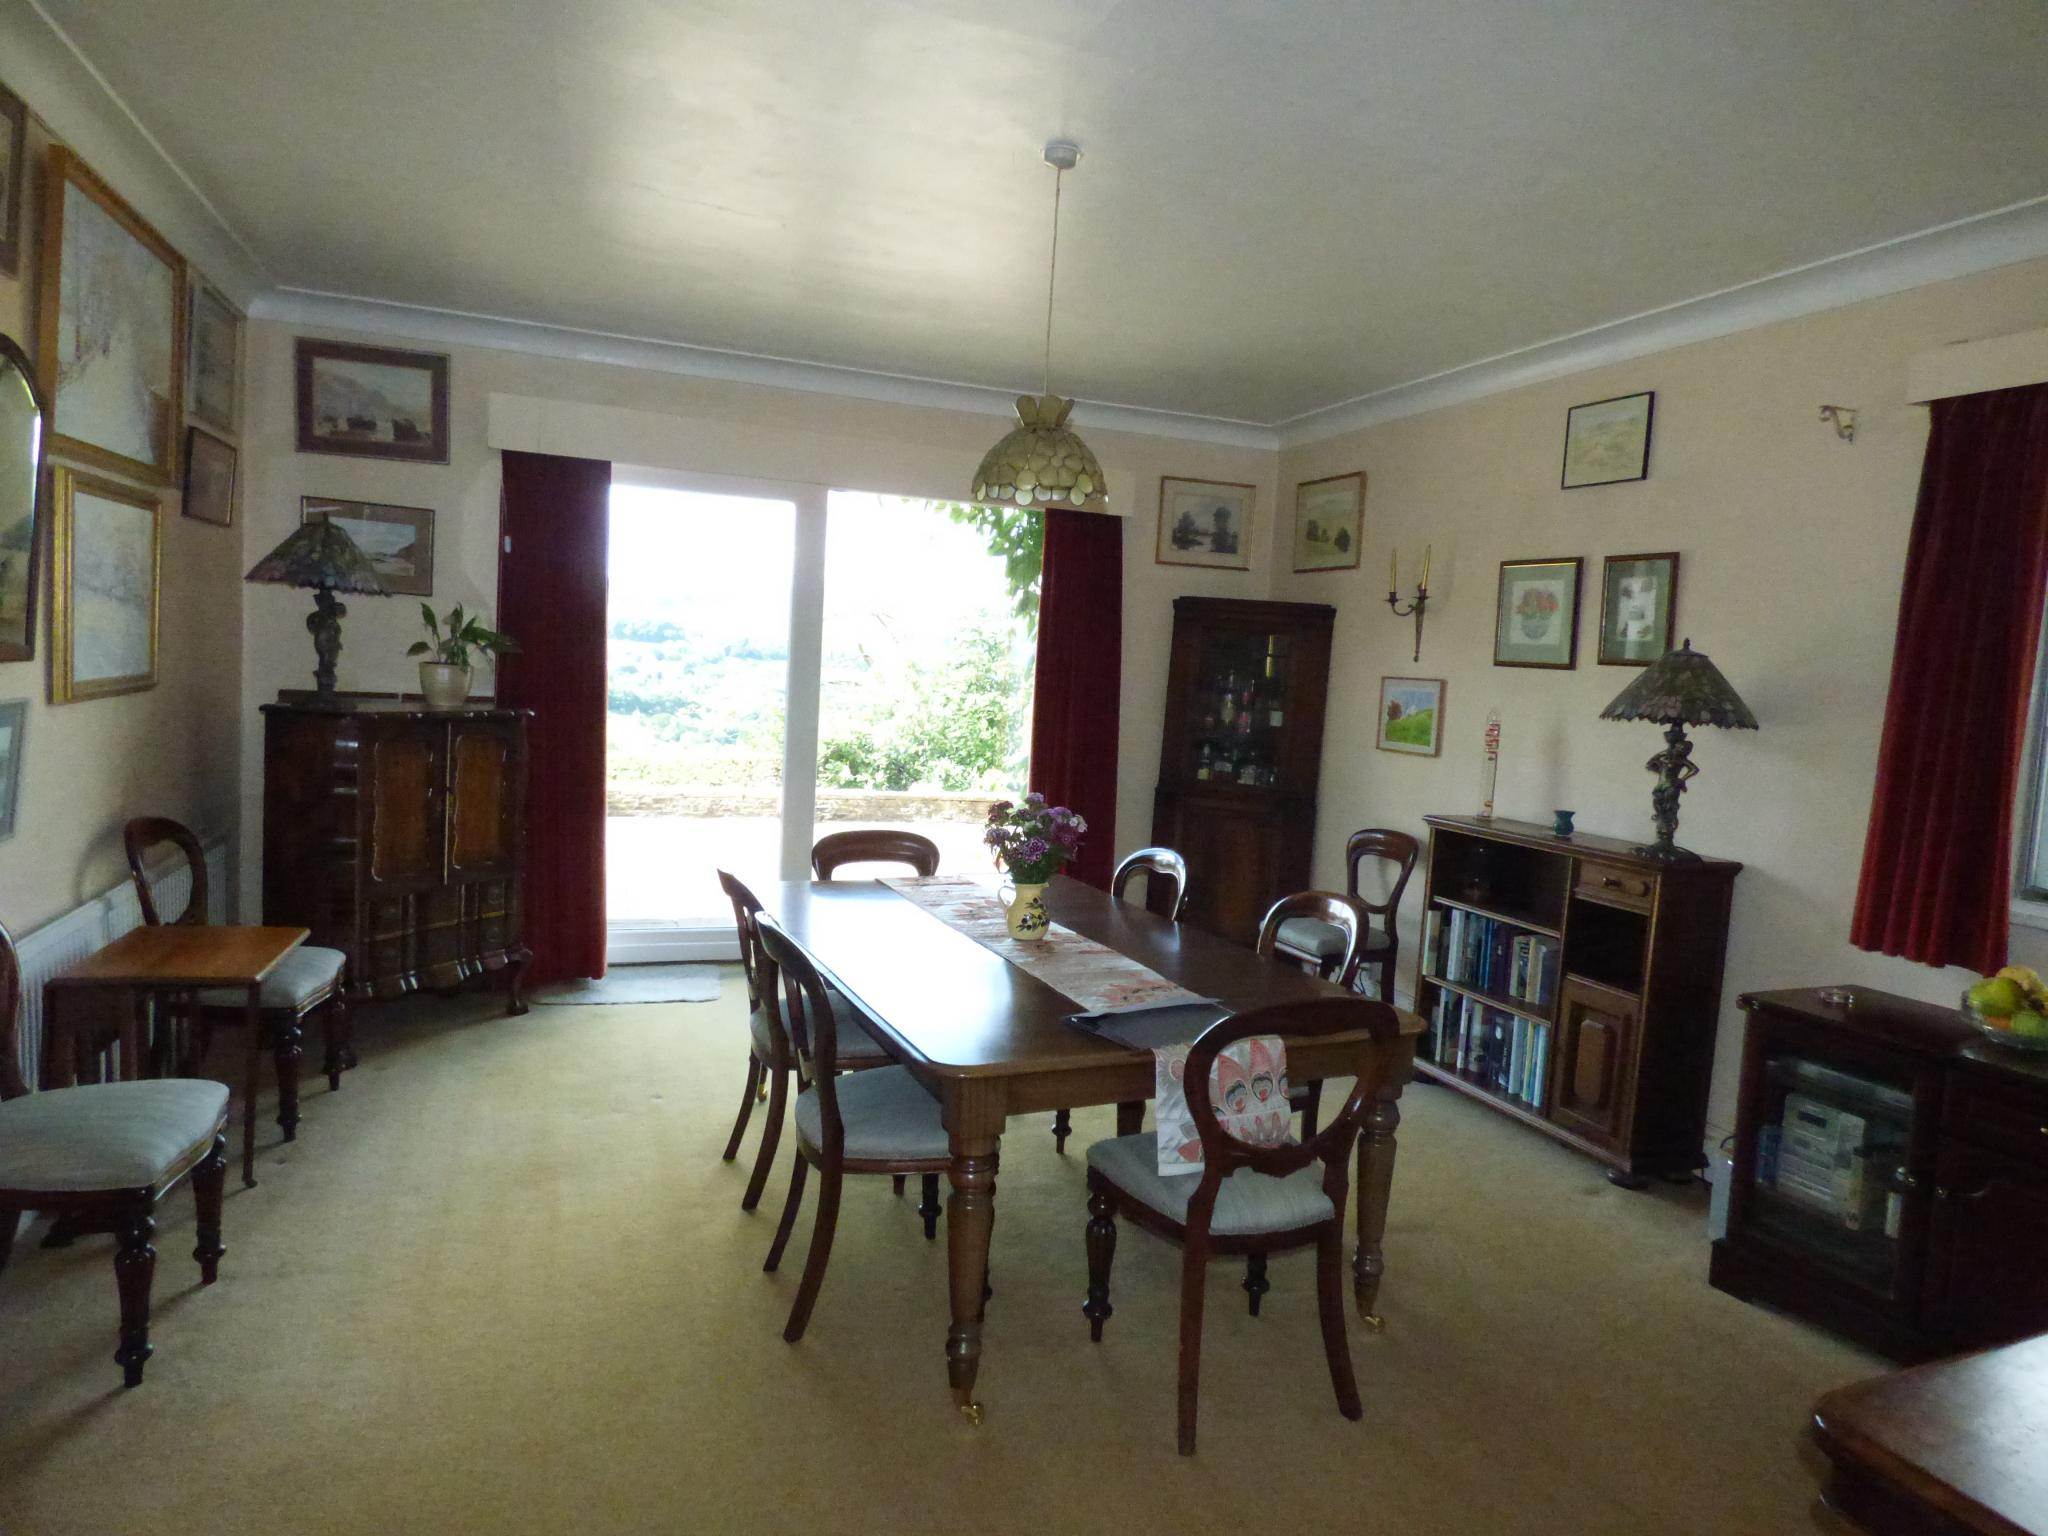 7 Bedroom Detached House For Sale - Photograph 7